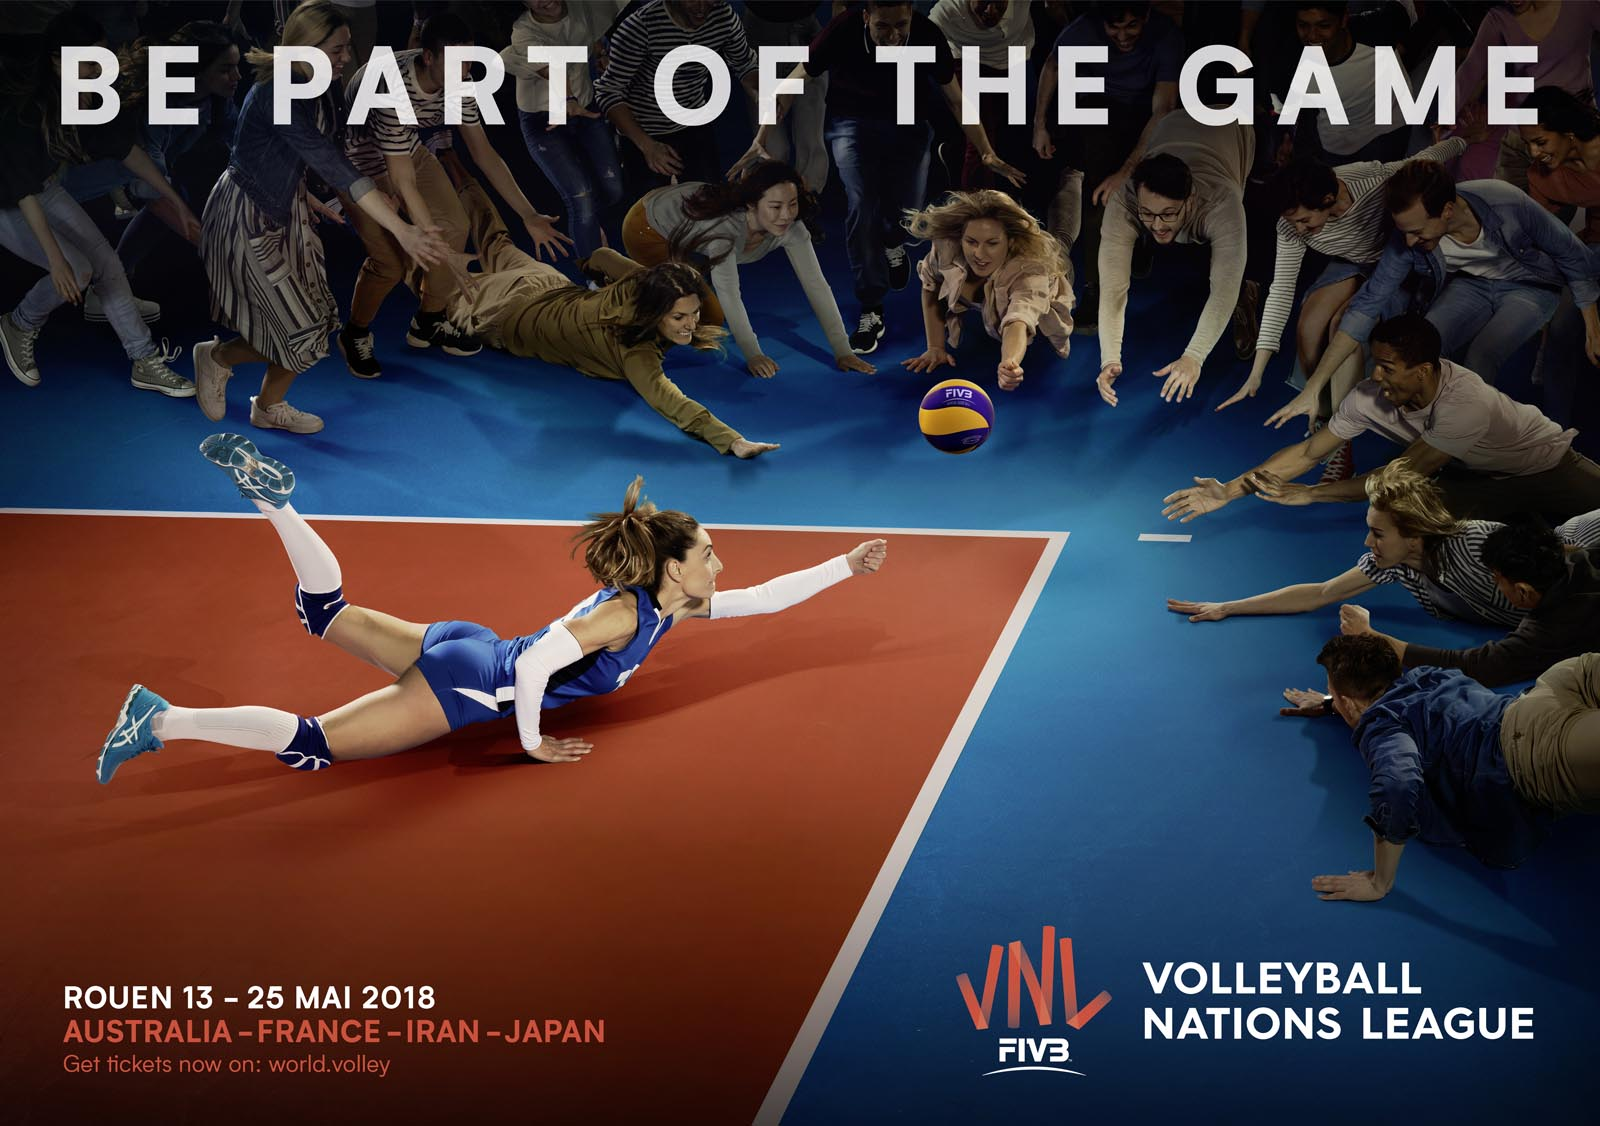 Squids_Network_creative_agency_FIVB_VNL_Poster_Woman